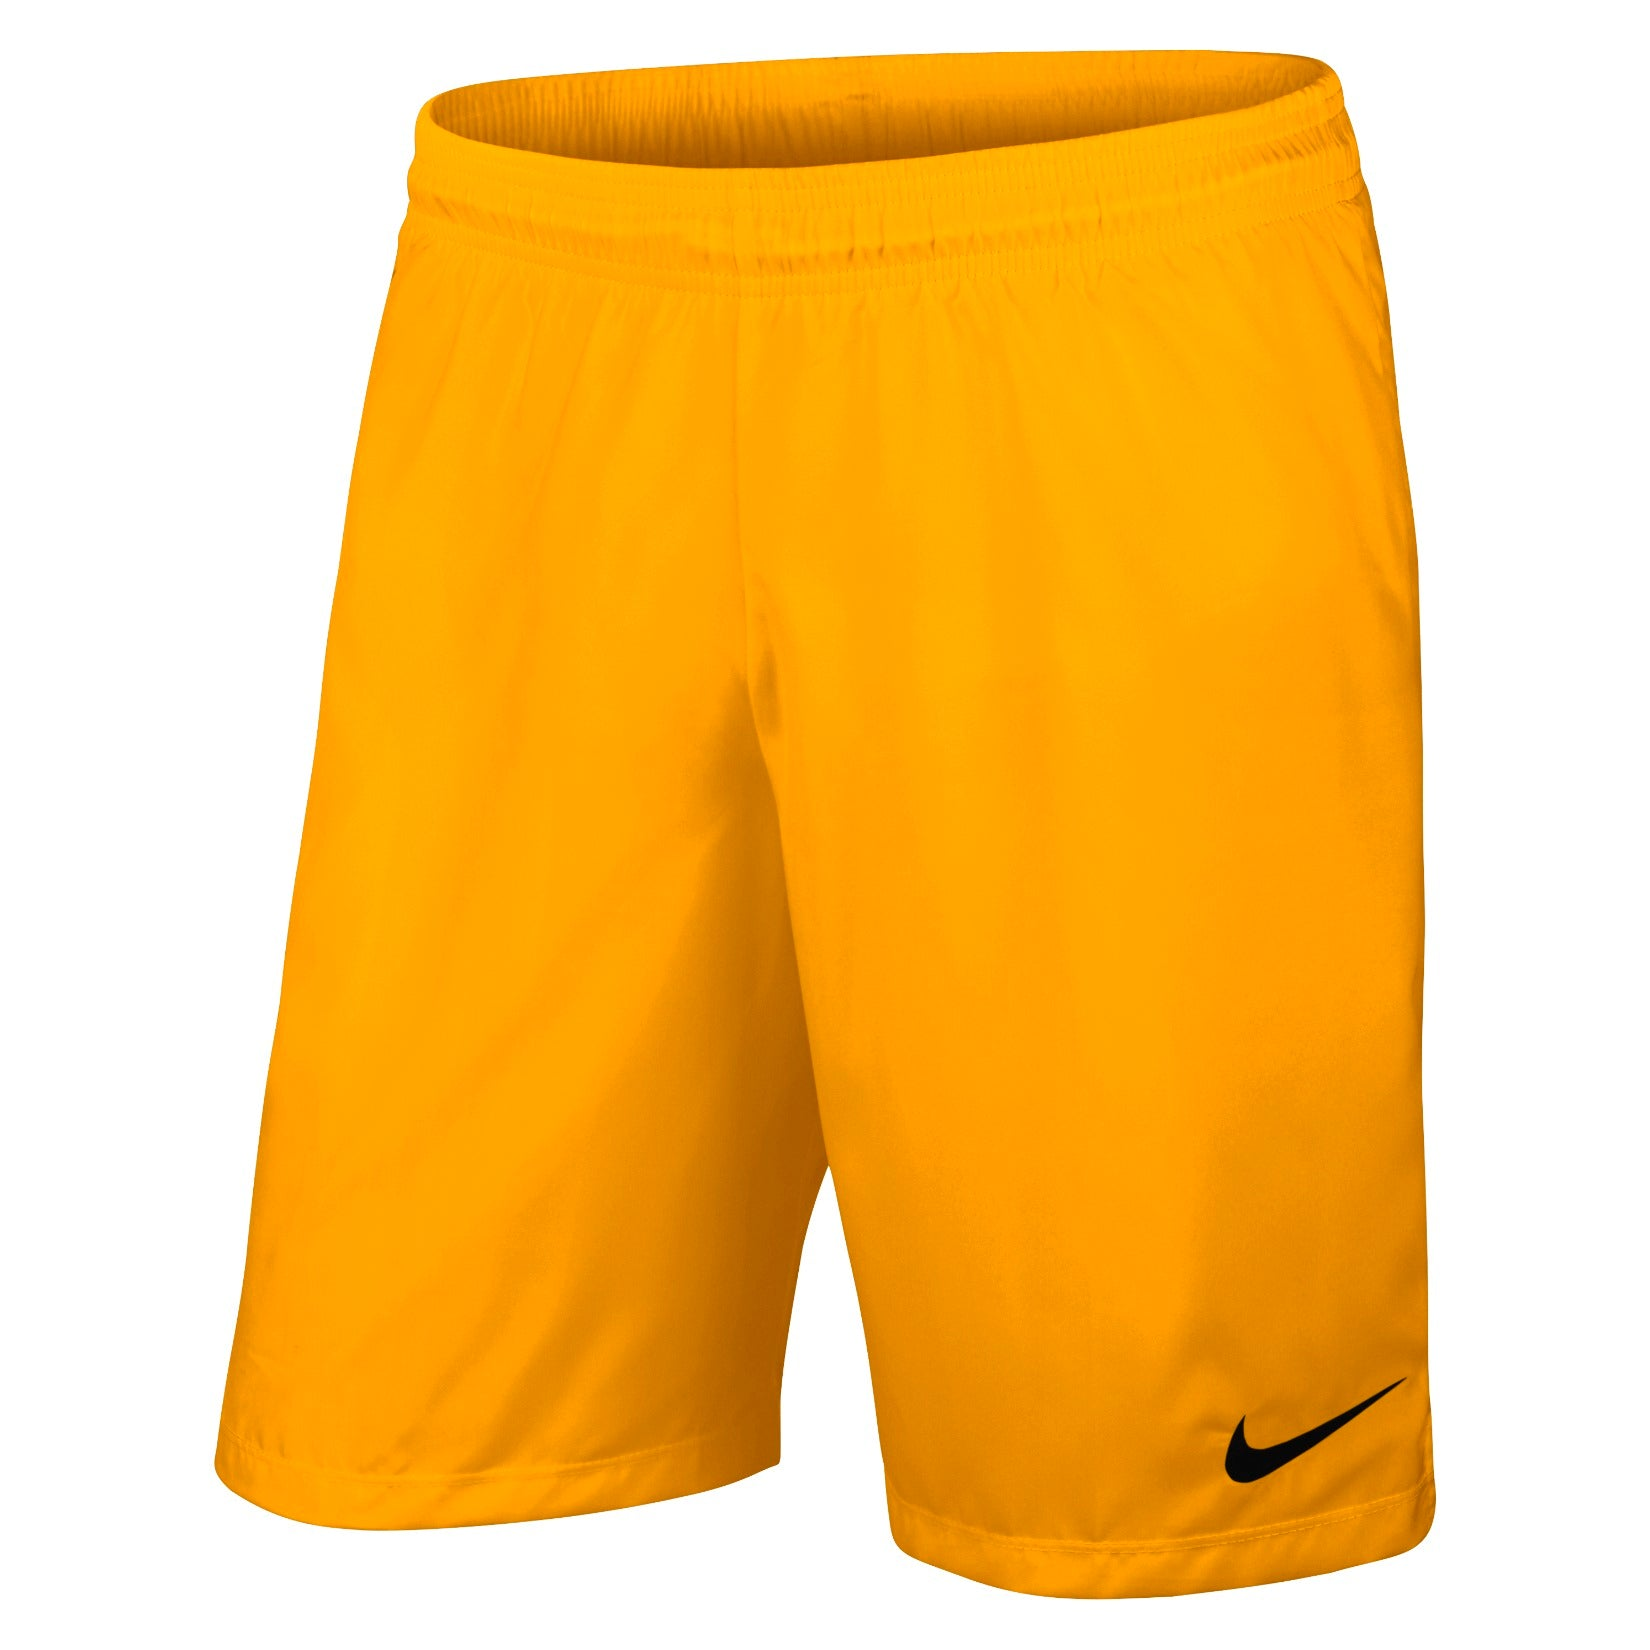 Mens DRY Laser III Woven Football Shorts.    725901